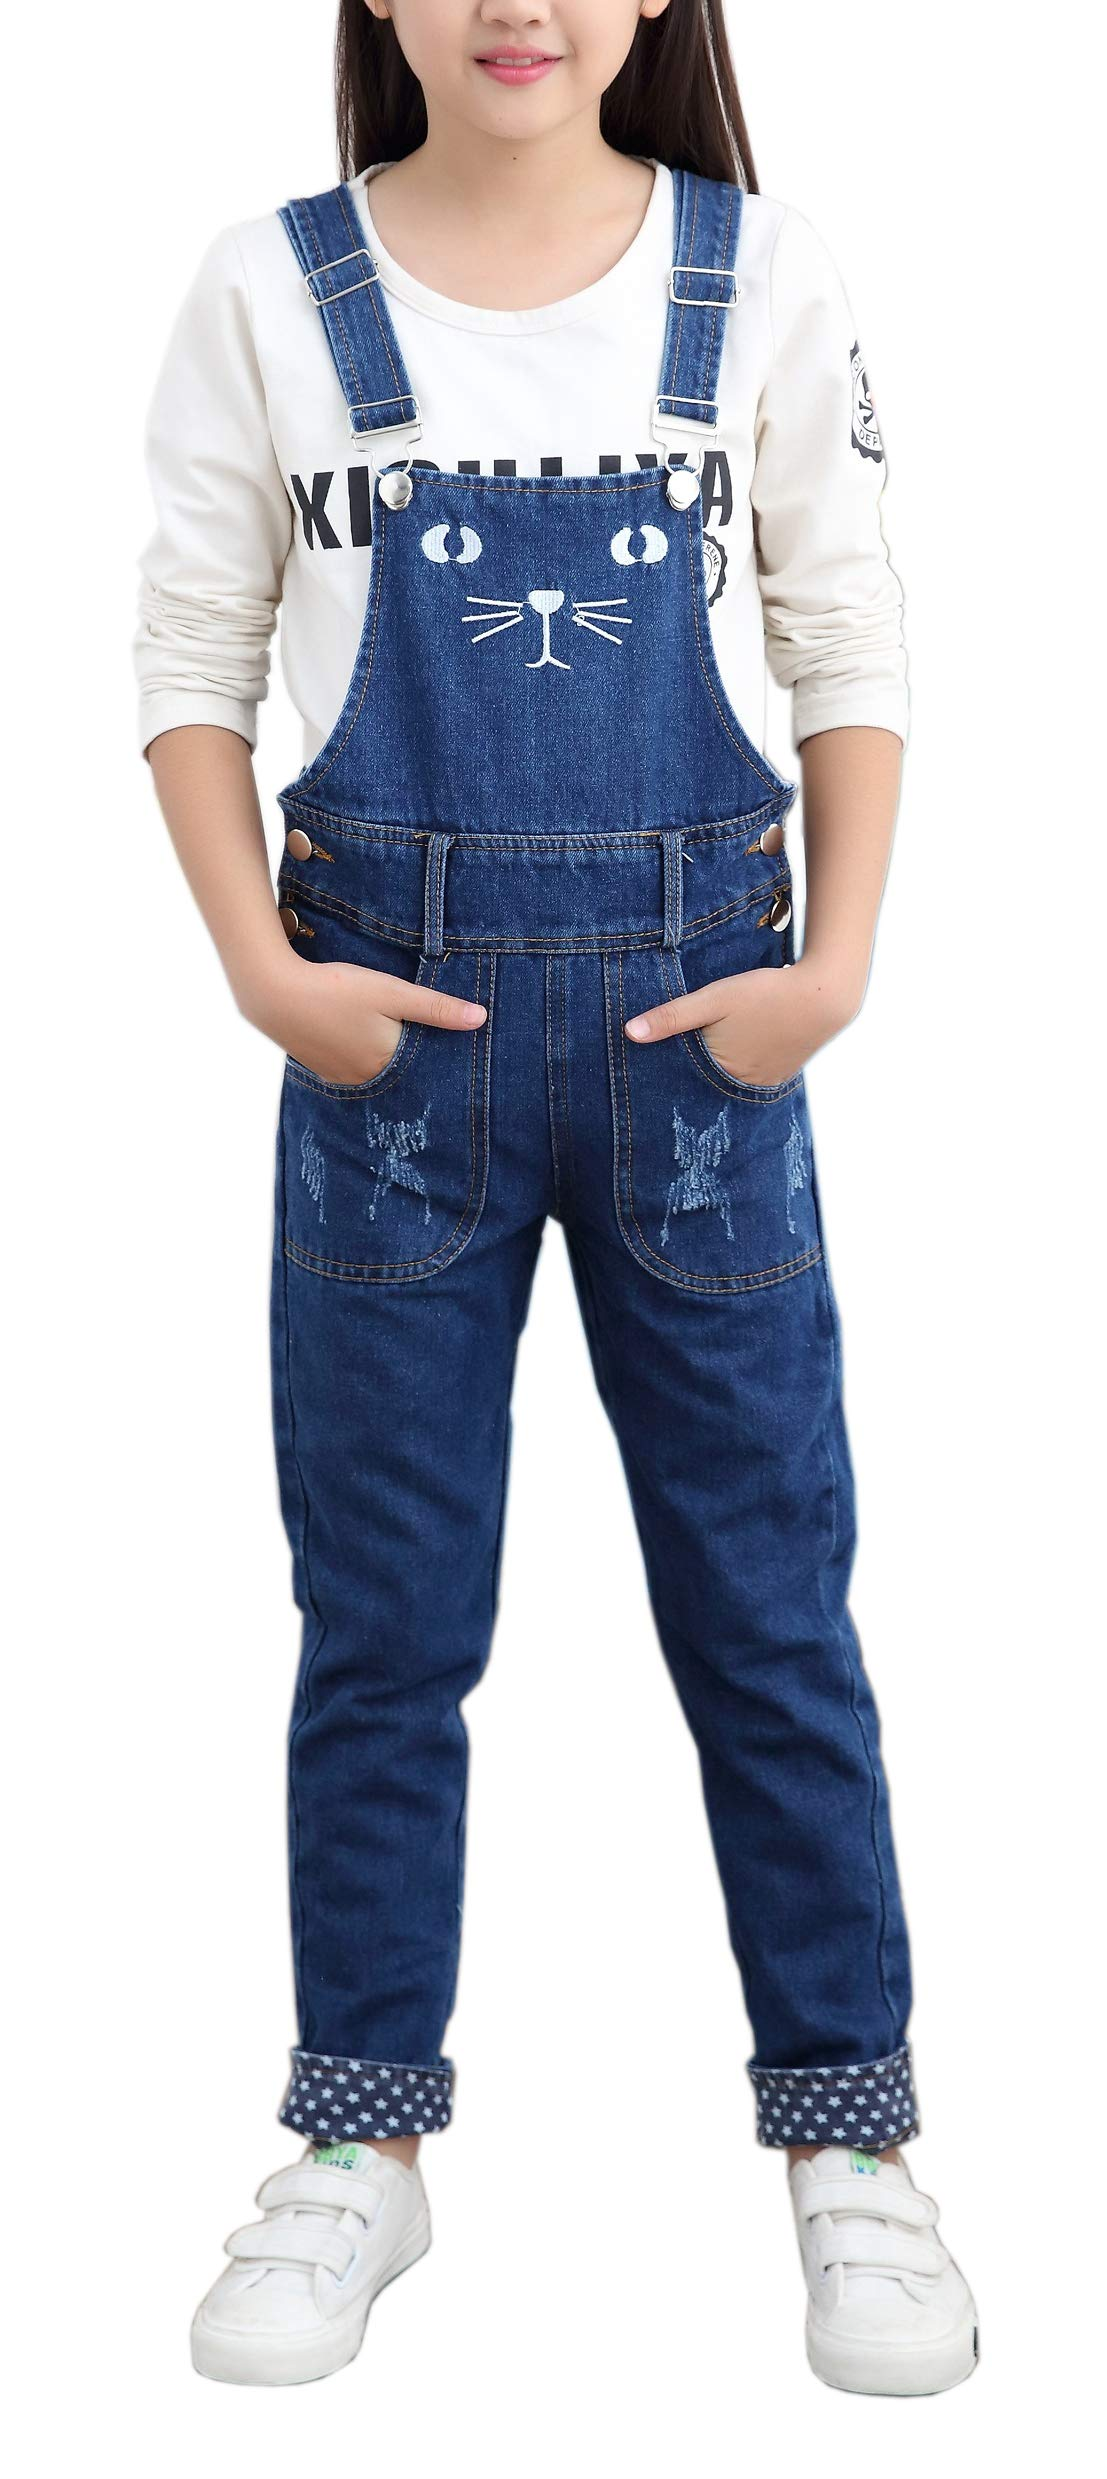 Girls Big Kids Jumpsuits Jeans Denim Bib Overalls for Size 4-13 Years Blue 150